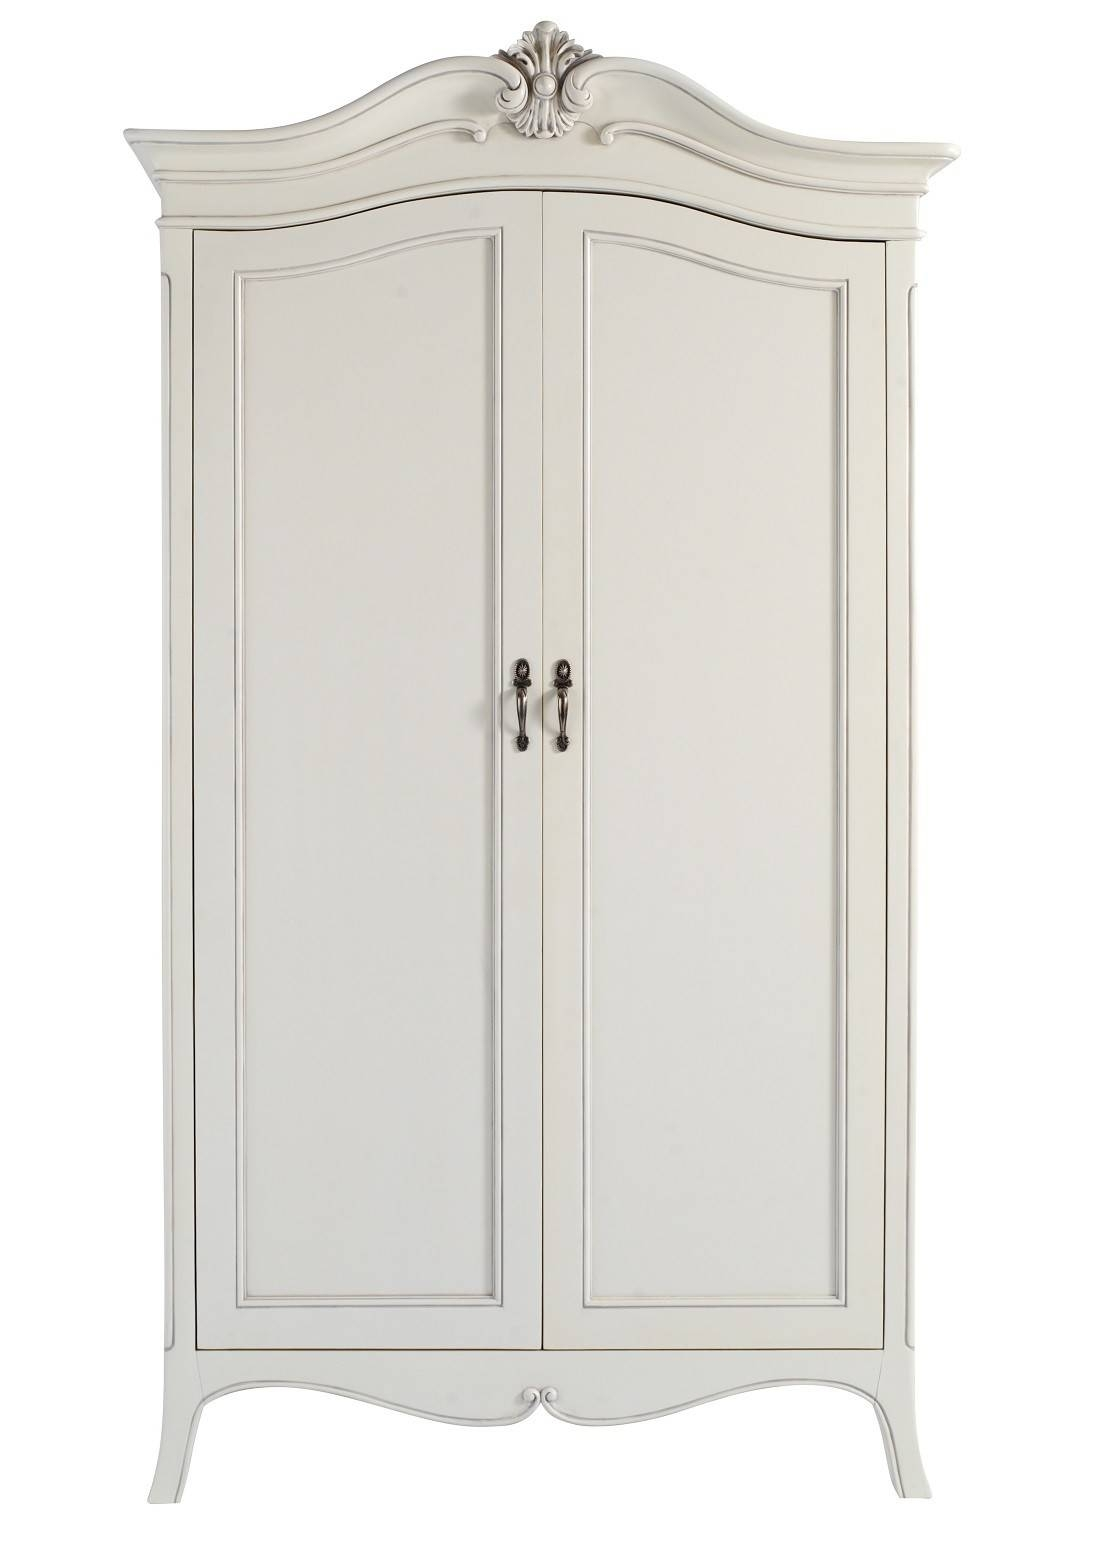 Louis French Ivory Painted 2 Door Double Wardrobe | Oak Furniture Uk pertaining to French Style White Wardrobes (Image 10 of 15)